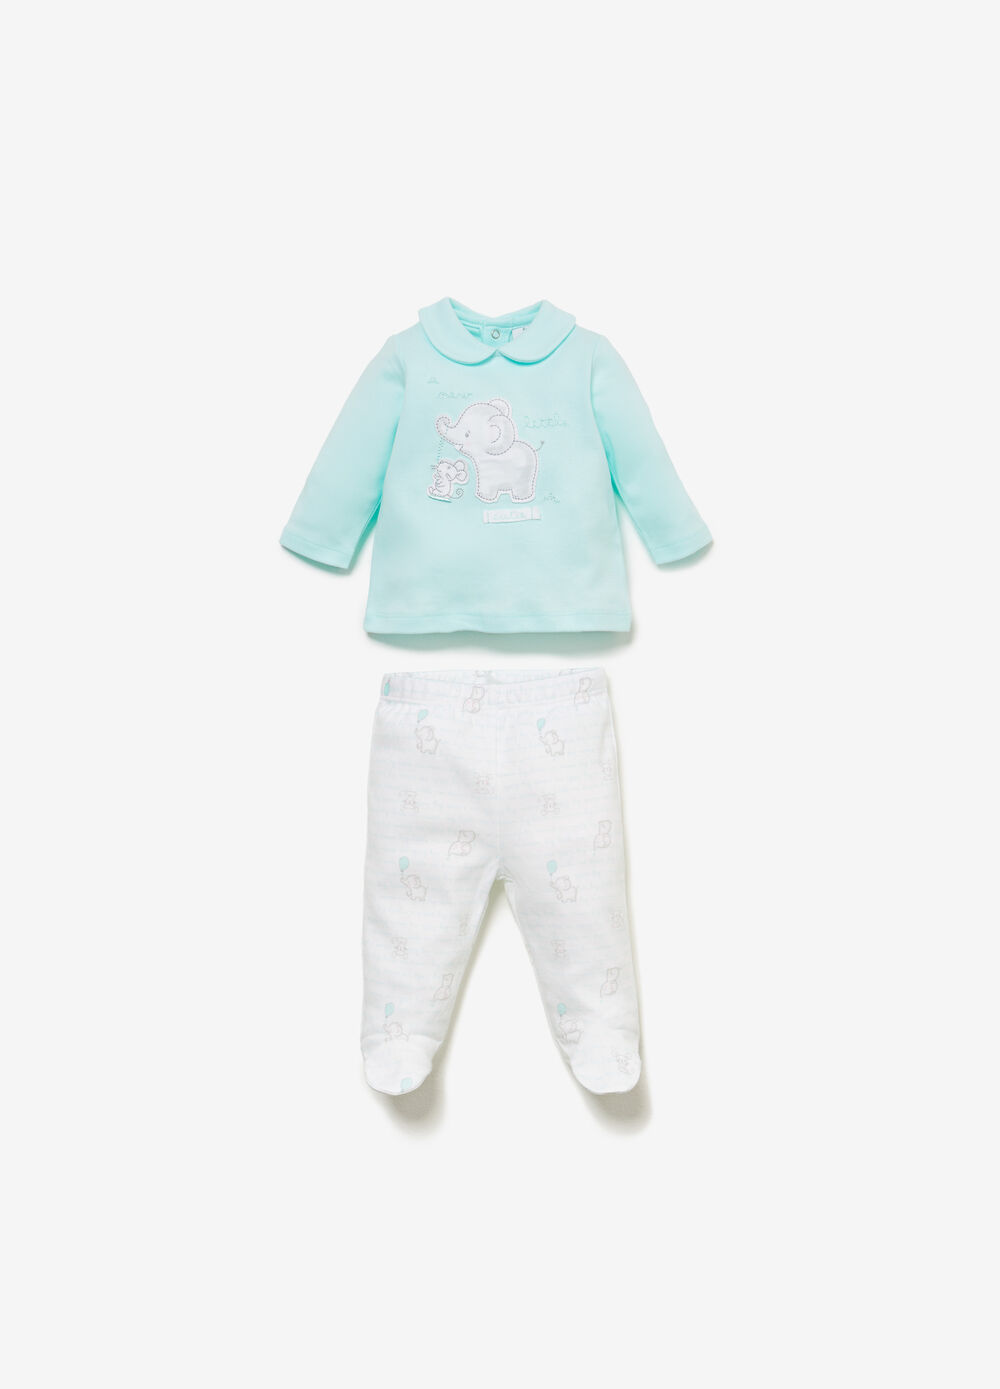 100% cotton outfit with patch and pattern